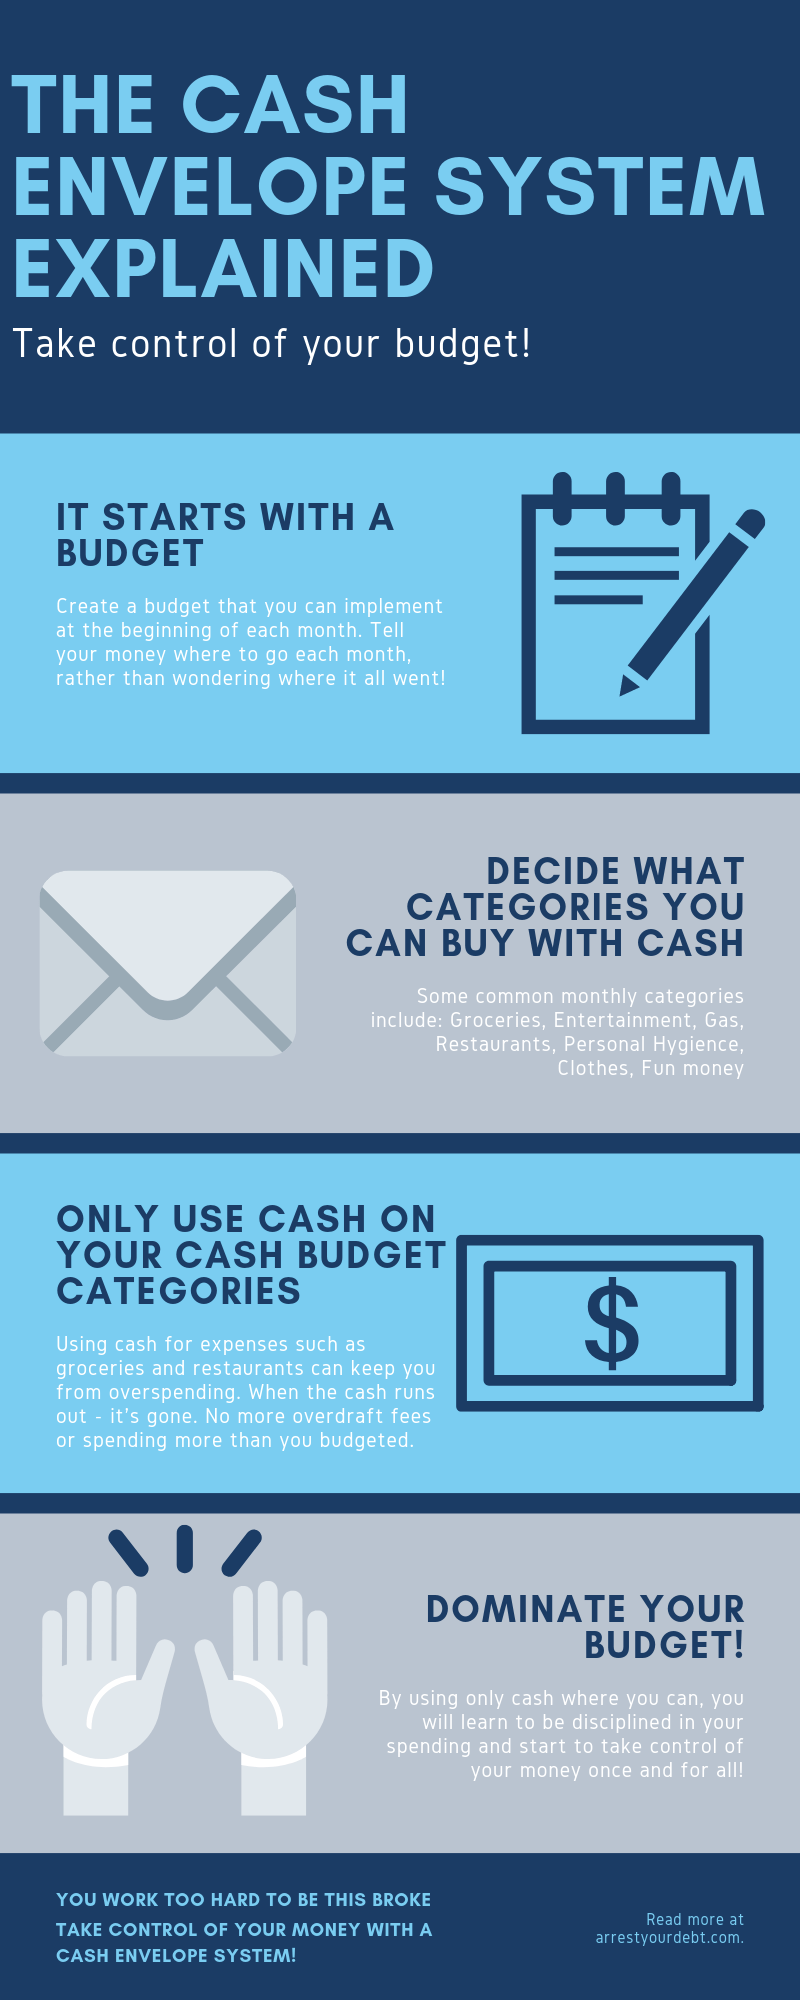 The Cash envelope system explained